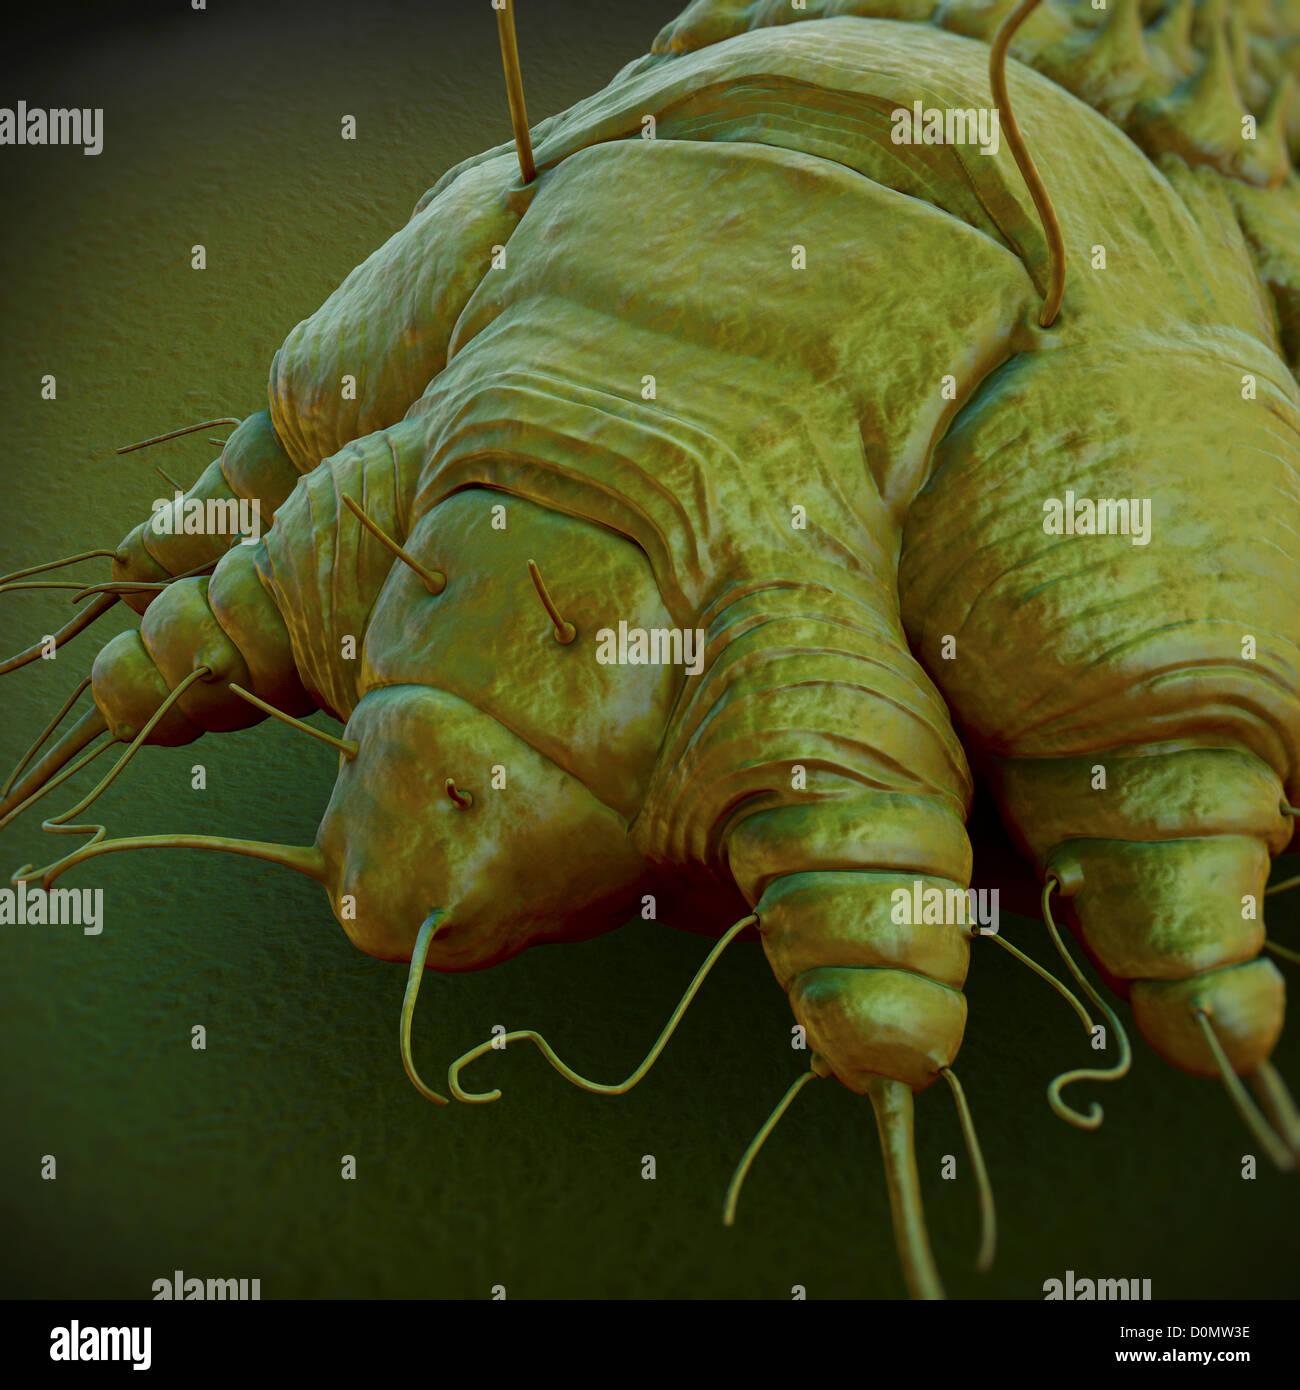 how to kill scabies mites